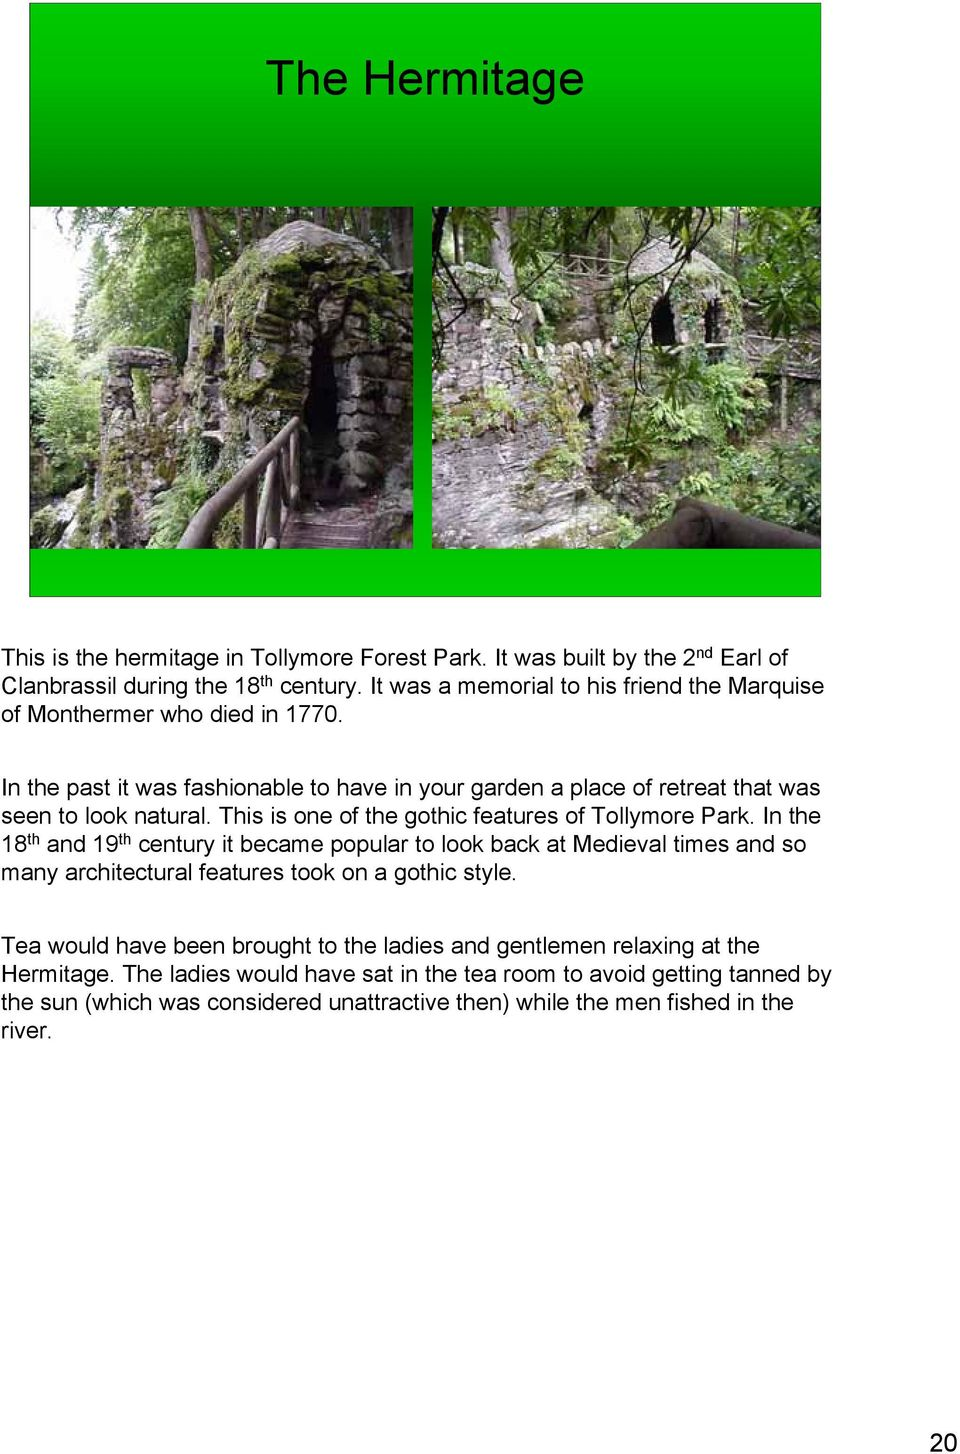 This is one of the gothic features of Tollymore Park.